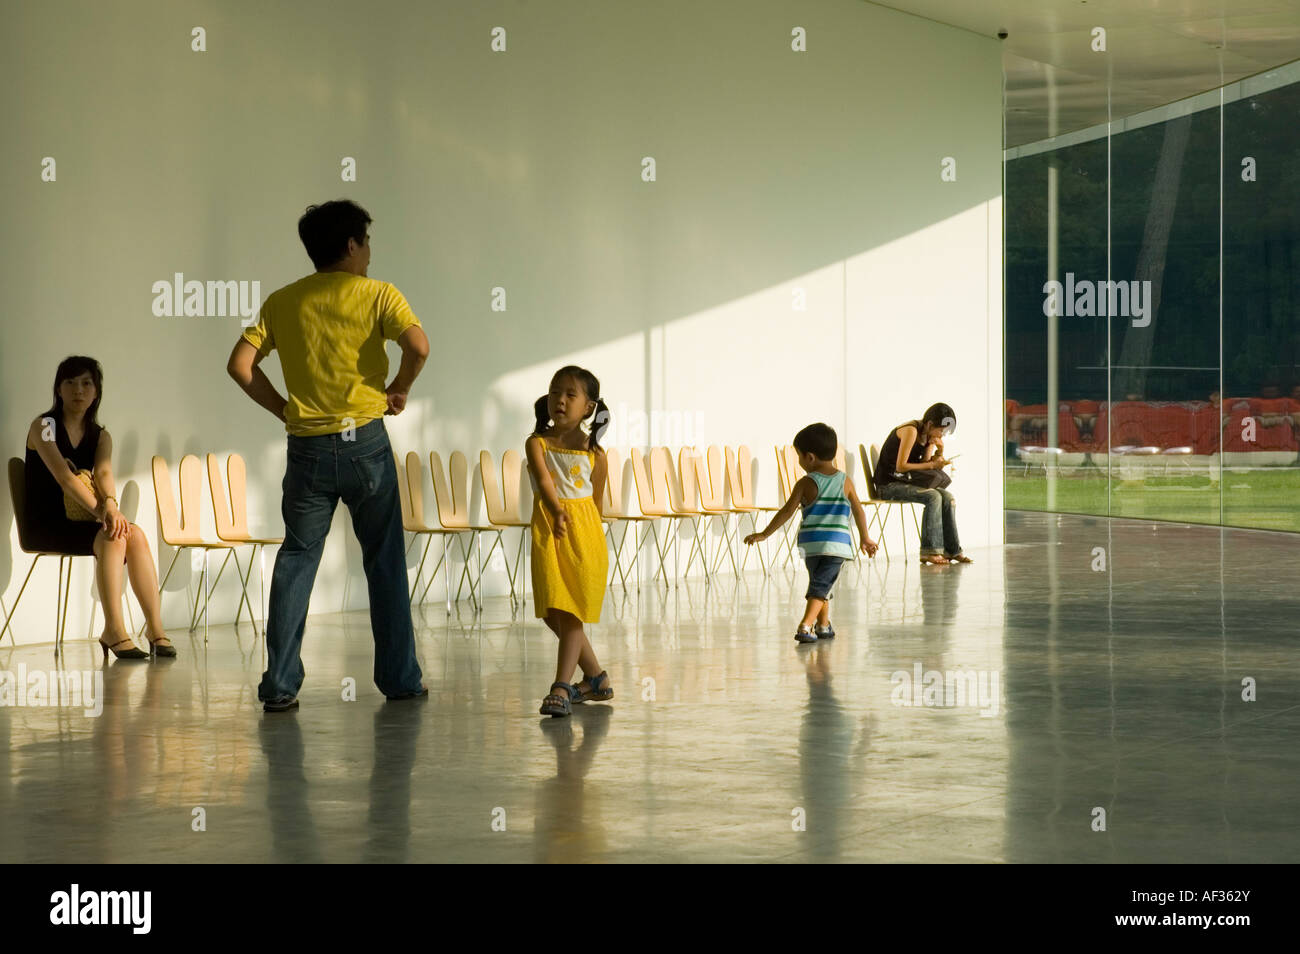 People in the foyer of the 21st Century Museum of Contemporary Art, Kanazawa, Japan - Stock Image